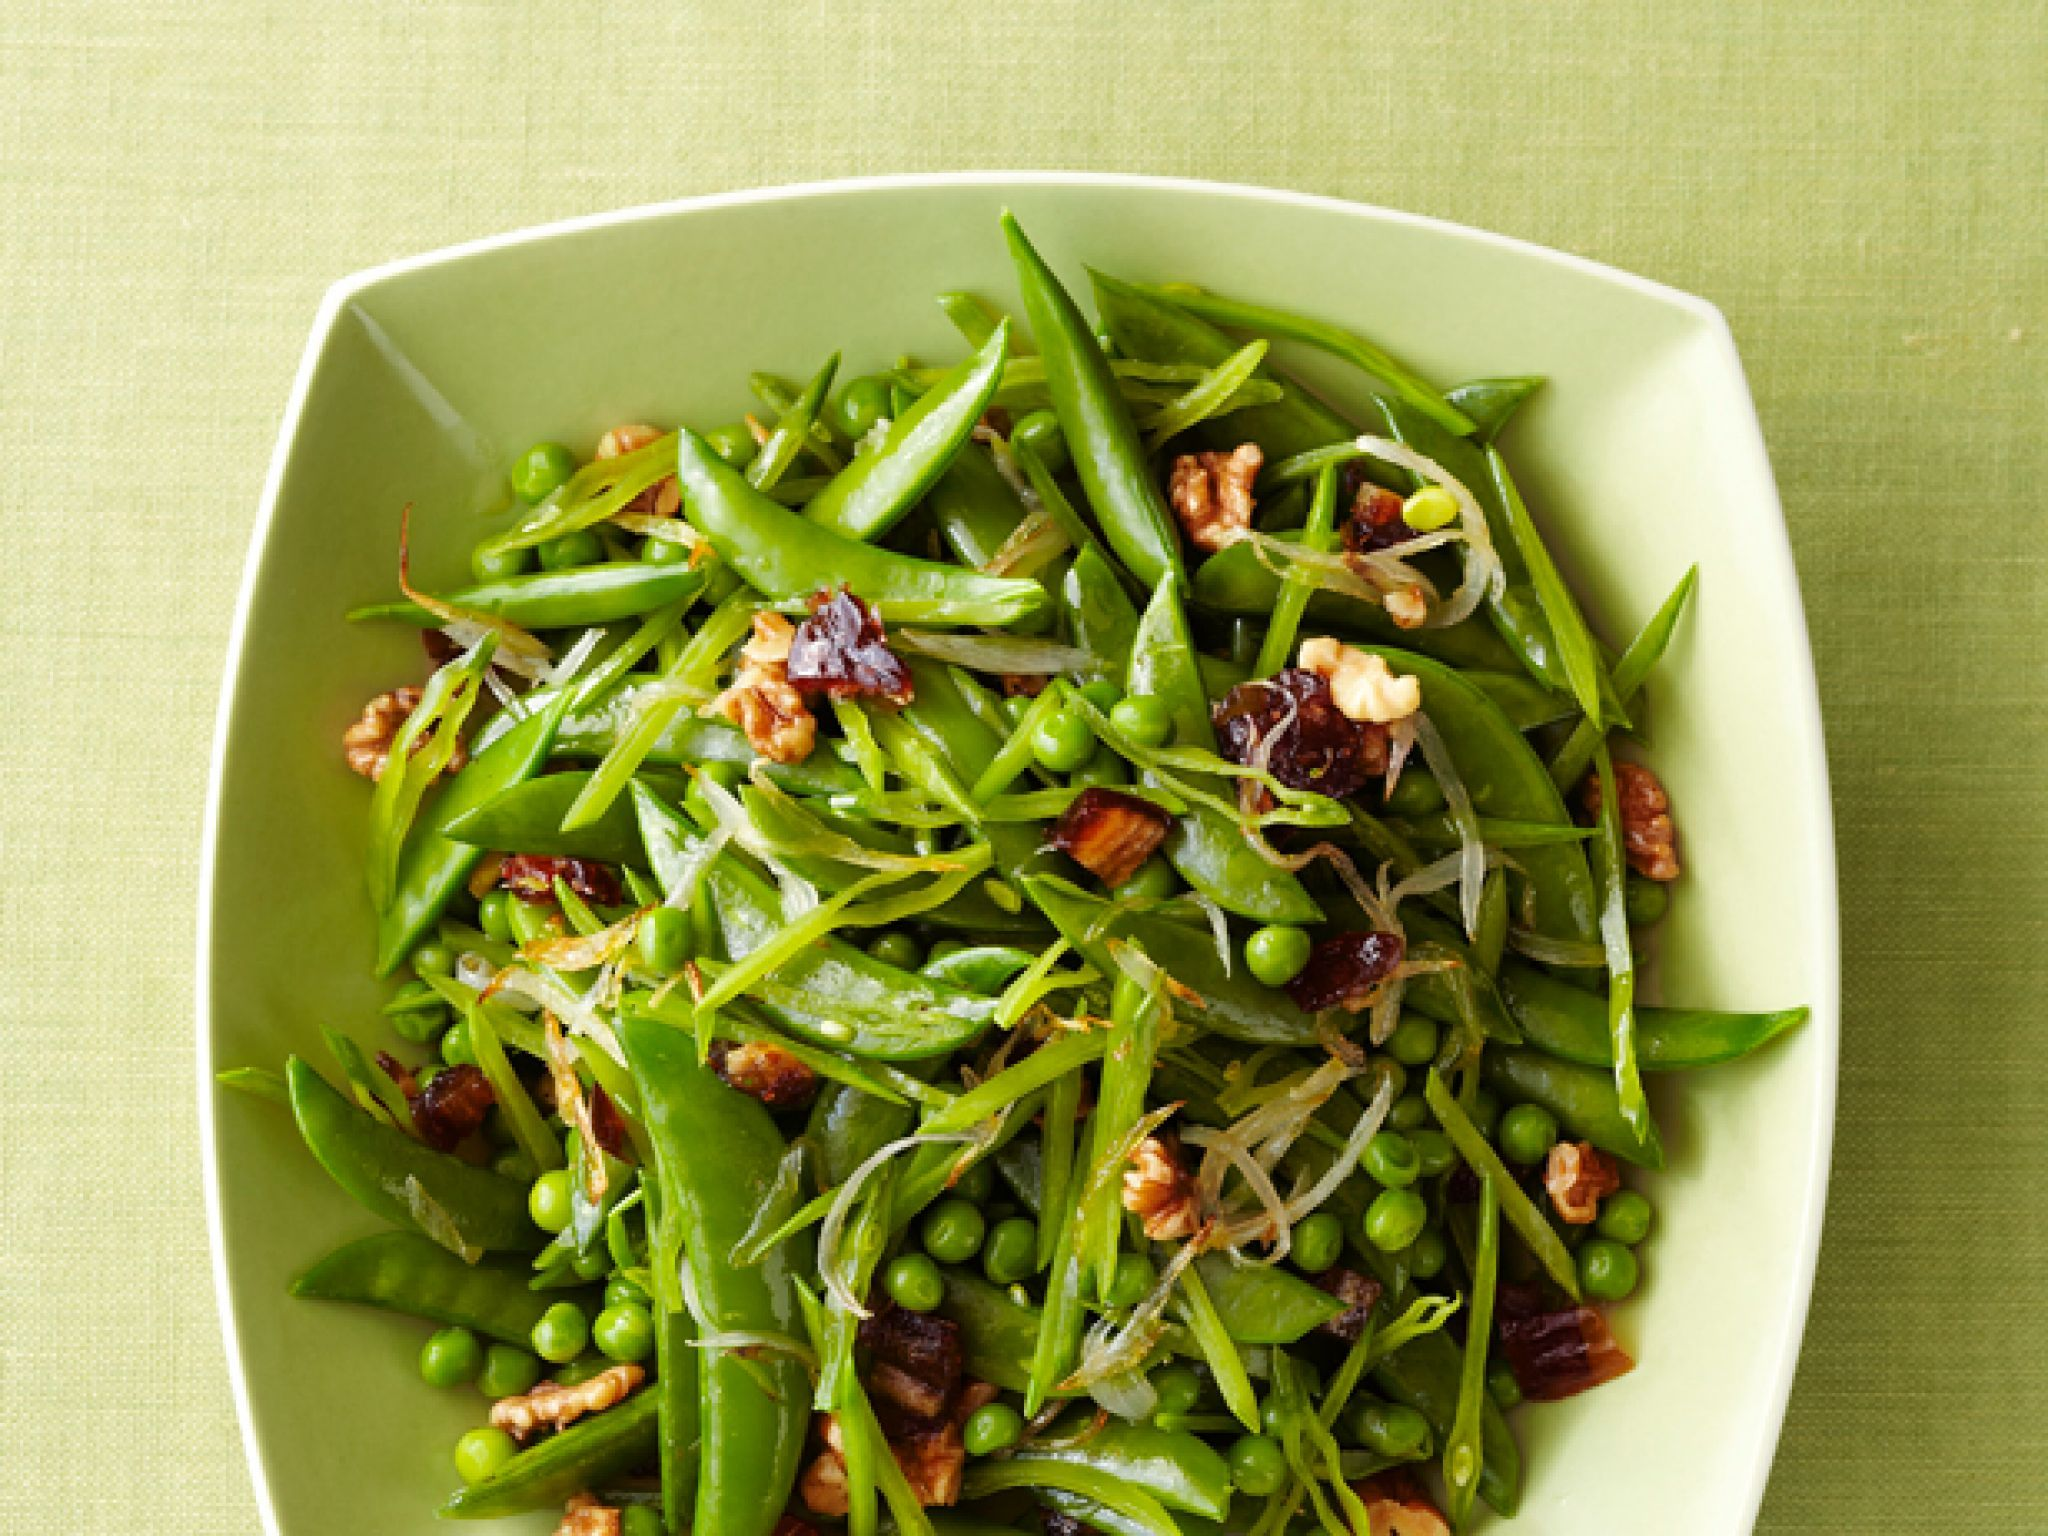 Veggie Noodles Spring Peas With Dates And Walnuts This Best Of The Season Side